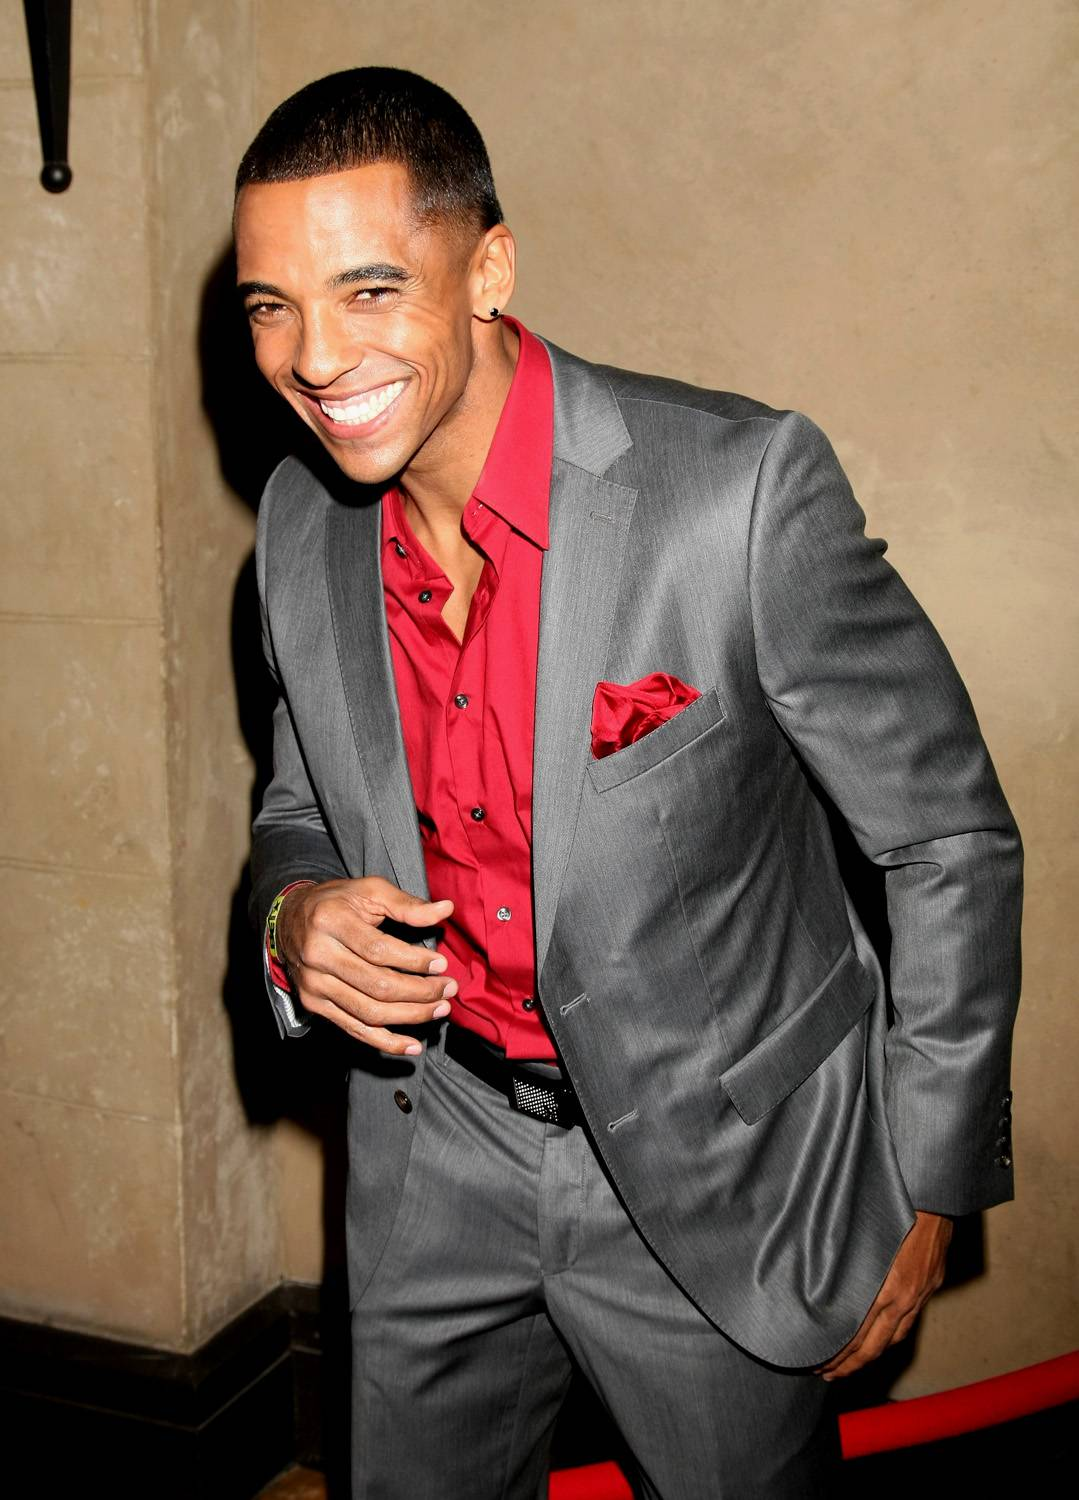 /content/dam/betcom/images/2012/01/Shows/Lets-Stay-Together/011112-shows-lets-stay-together-chistian-keyes-premiere-meet-christian-keyes.jpg